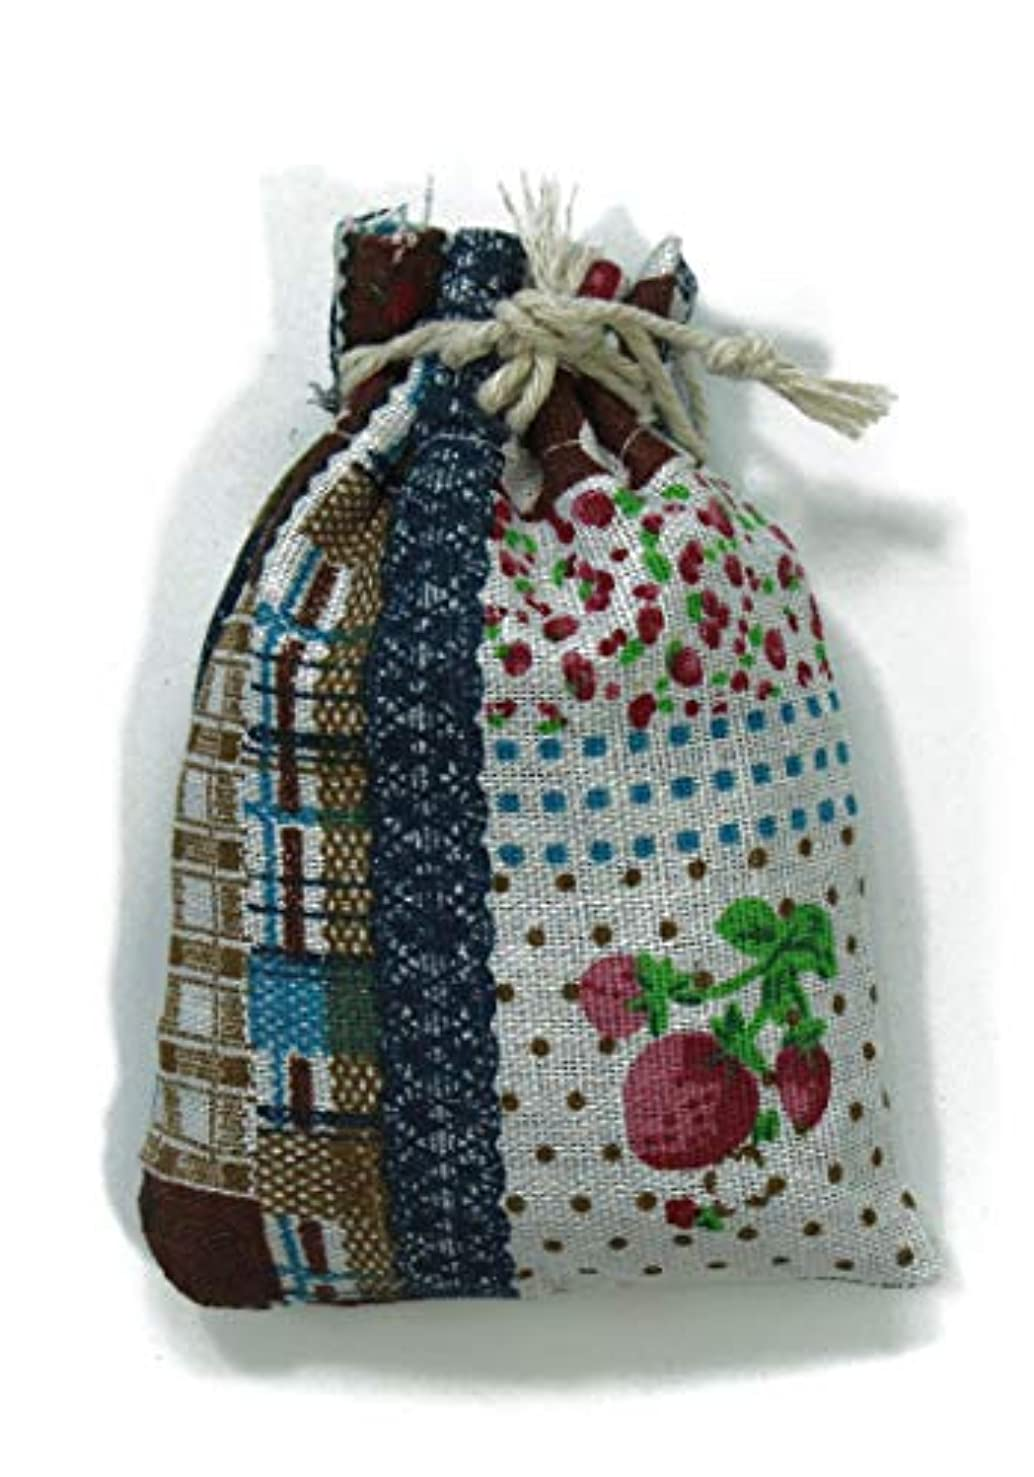 ALL in ONE Burlaps Drawstring Bags for Jewelry Wedding Gift Christmas DIY Craft (Strawberry 4x5.5 inch 25pcs)